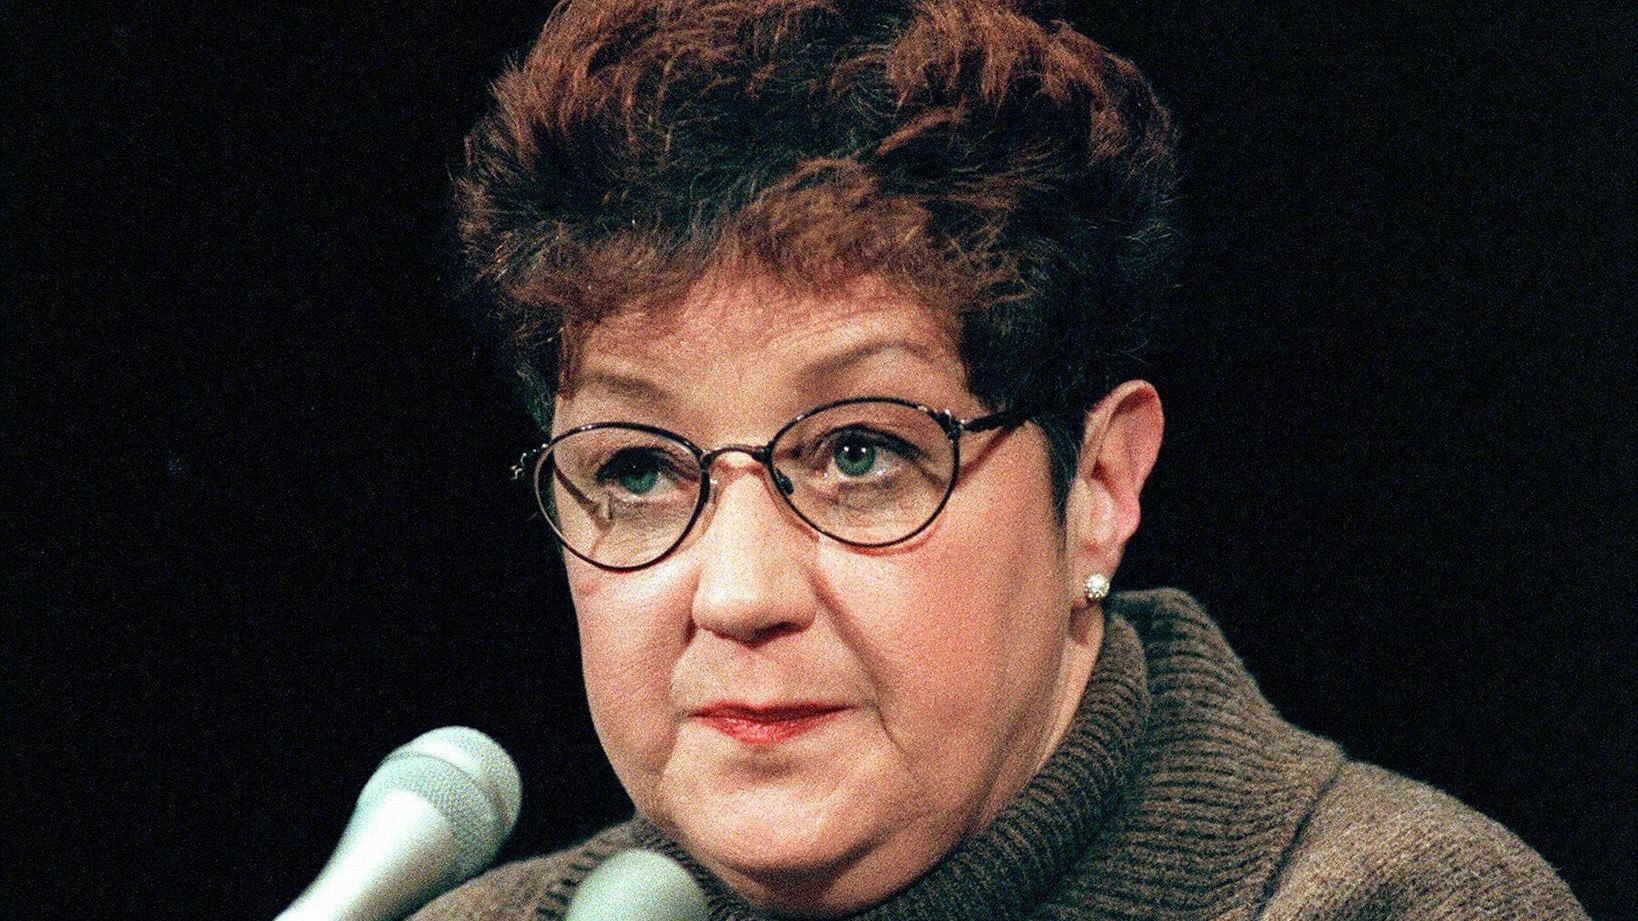 This file photo from Jan. 21, 1998 shows Norma McCorvey, the woman at the center of the U.S. Supreme Court ruling on abortion, as she testifies before a Senate Judiciary Committee subcommittee during hearings on the 25th anniversary of Roe v. Wade on Capitol Hill in Washington, DC. (CHRIS KLEPONIS/AFP via Getty Images)